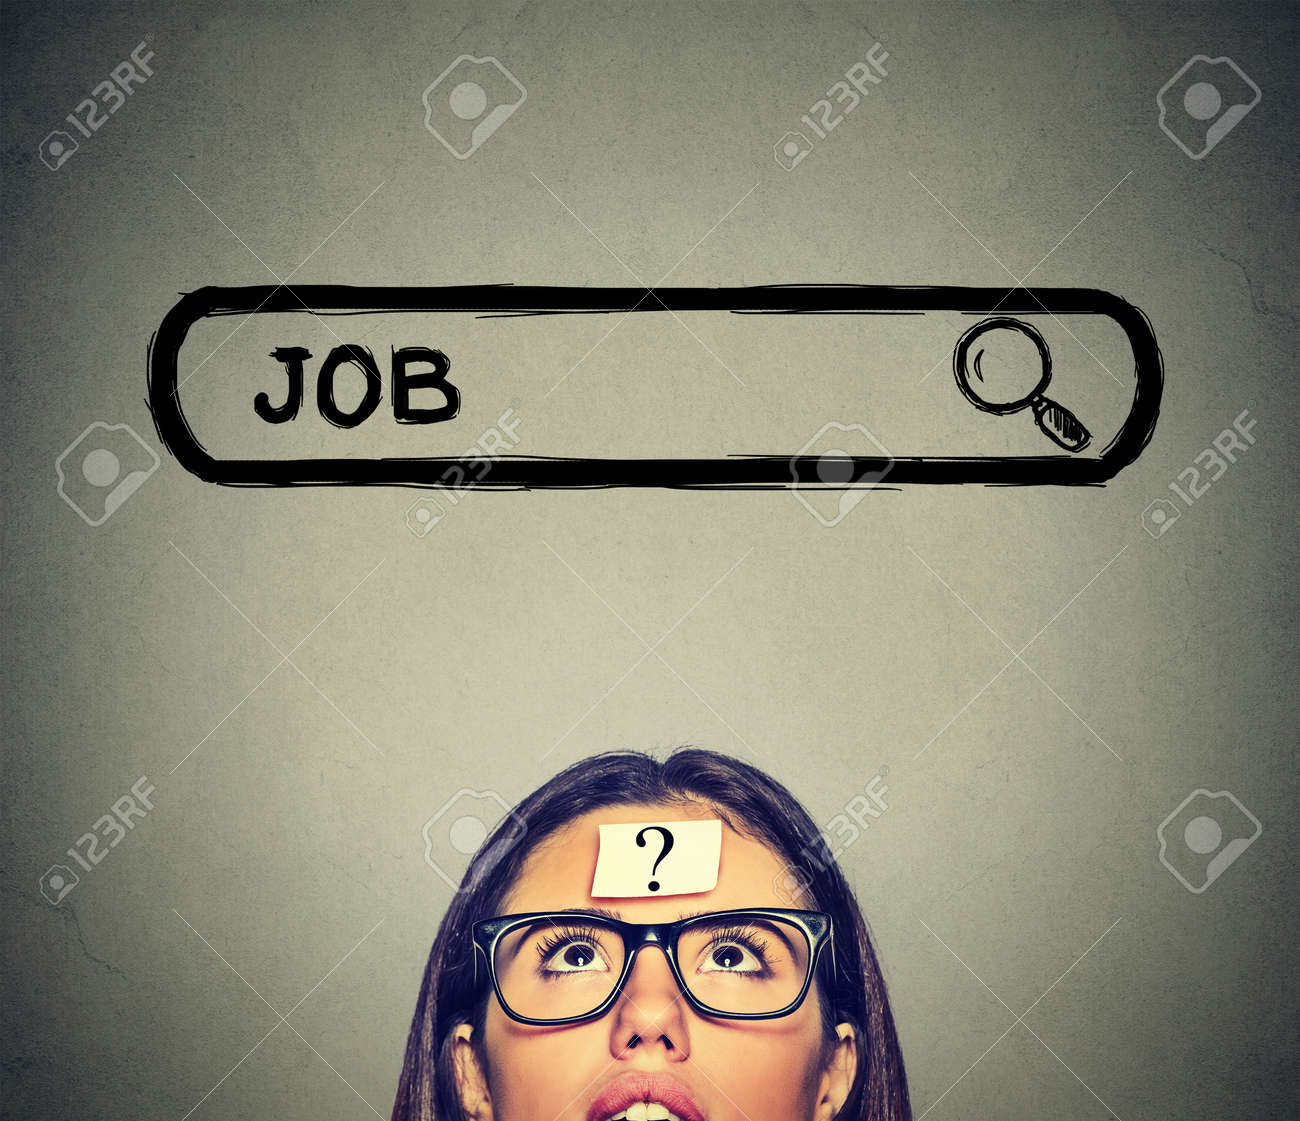 job images stock pictures royalty job photos and stock job headshot young w in glasses thinking looking for a new job isolated on gray